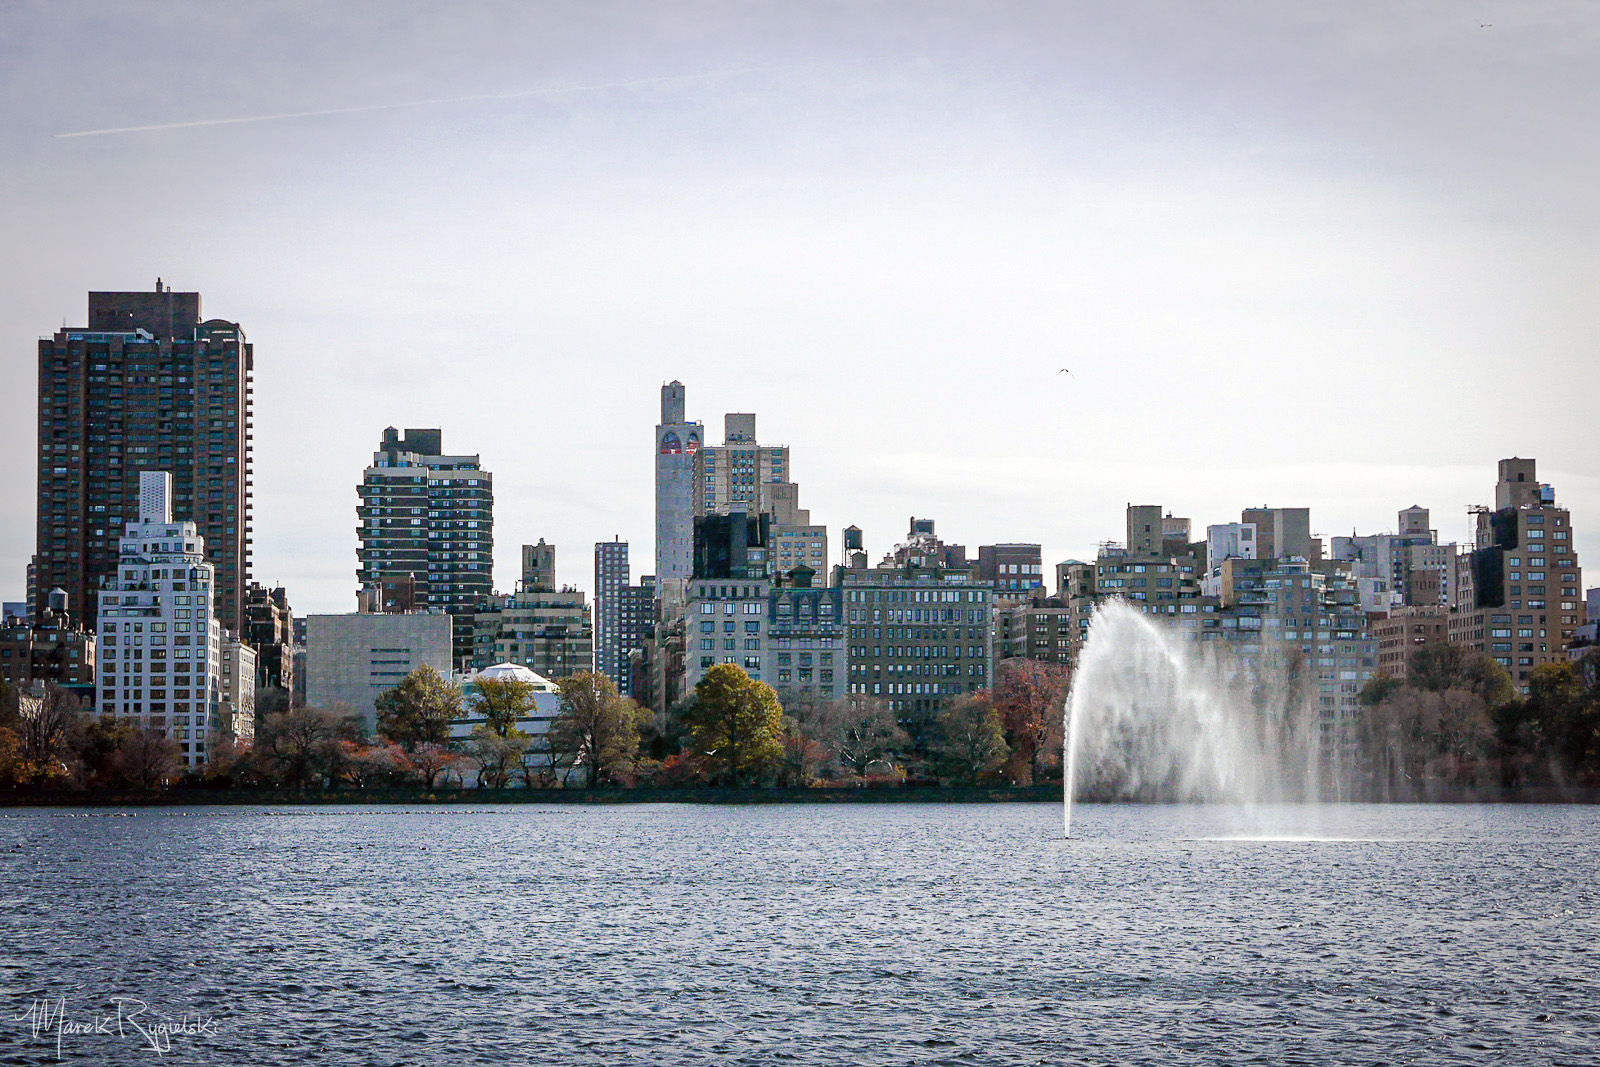 Upper East Side - view from Jacqueline Kennedy Onassis Reservoir in Central Park.